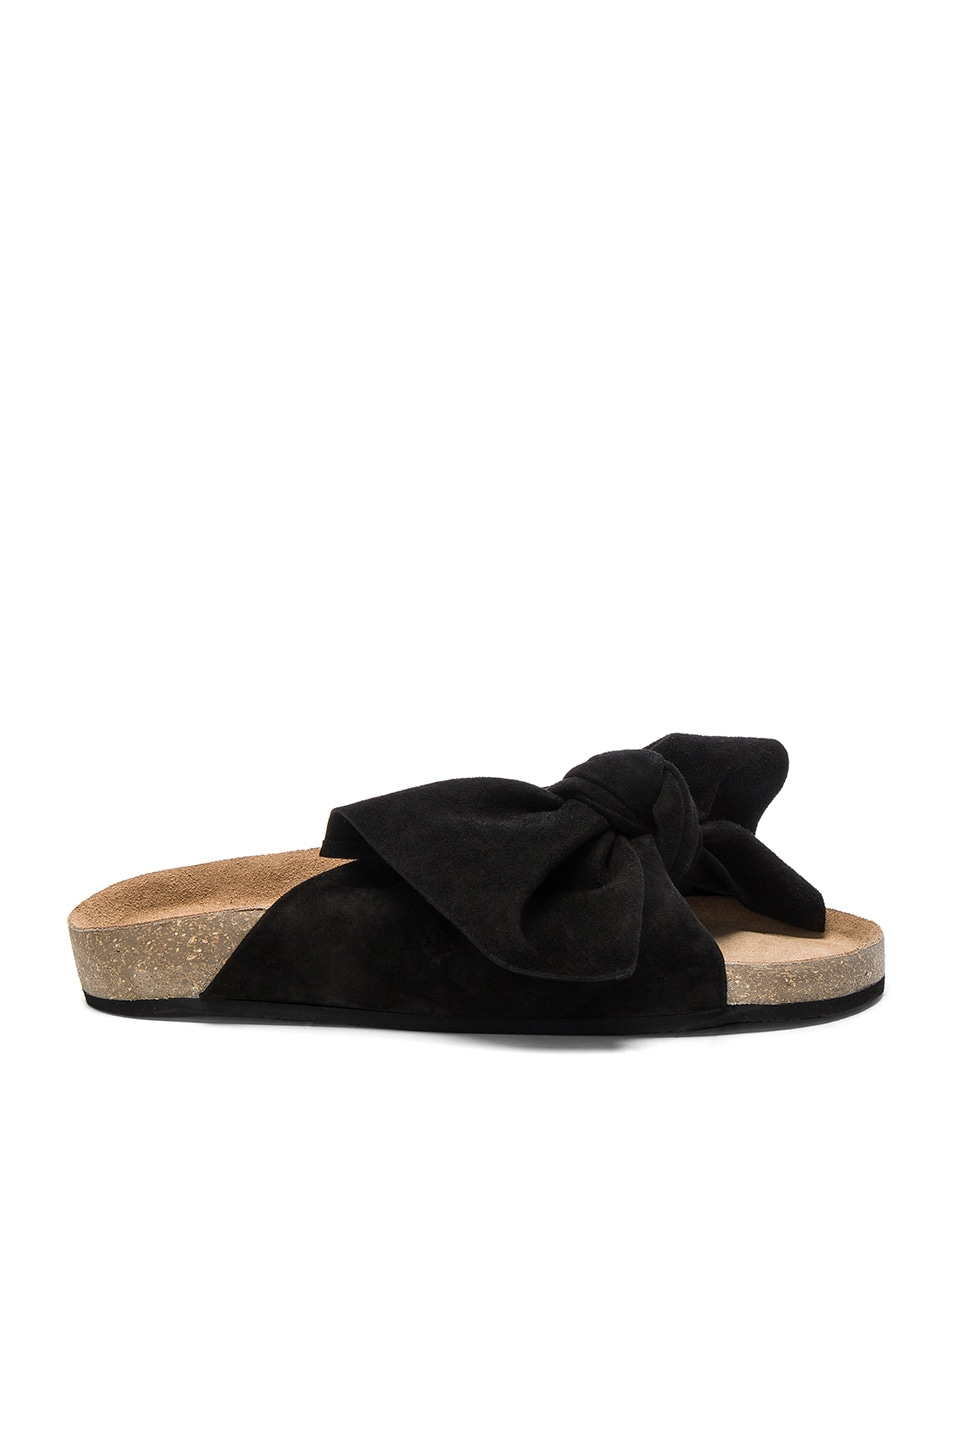 ULLA JOHNSON Suede Ingrid Slides in . ub7QW2E